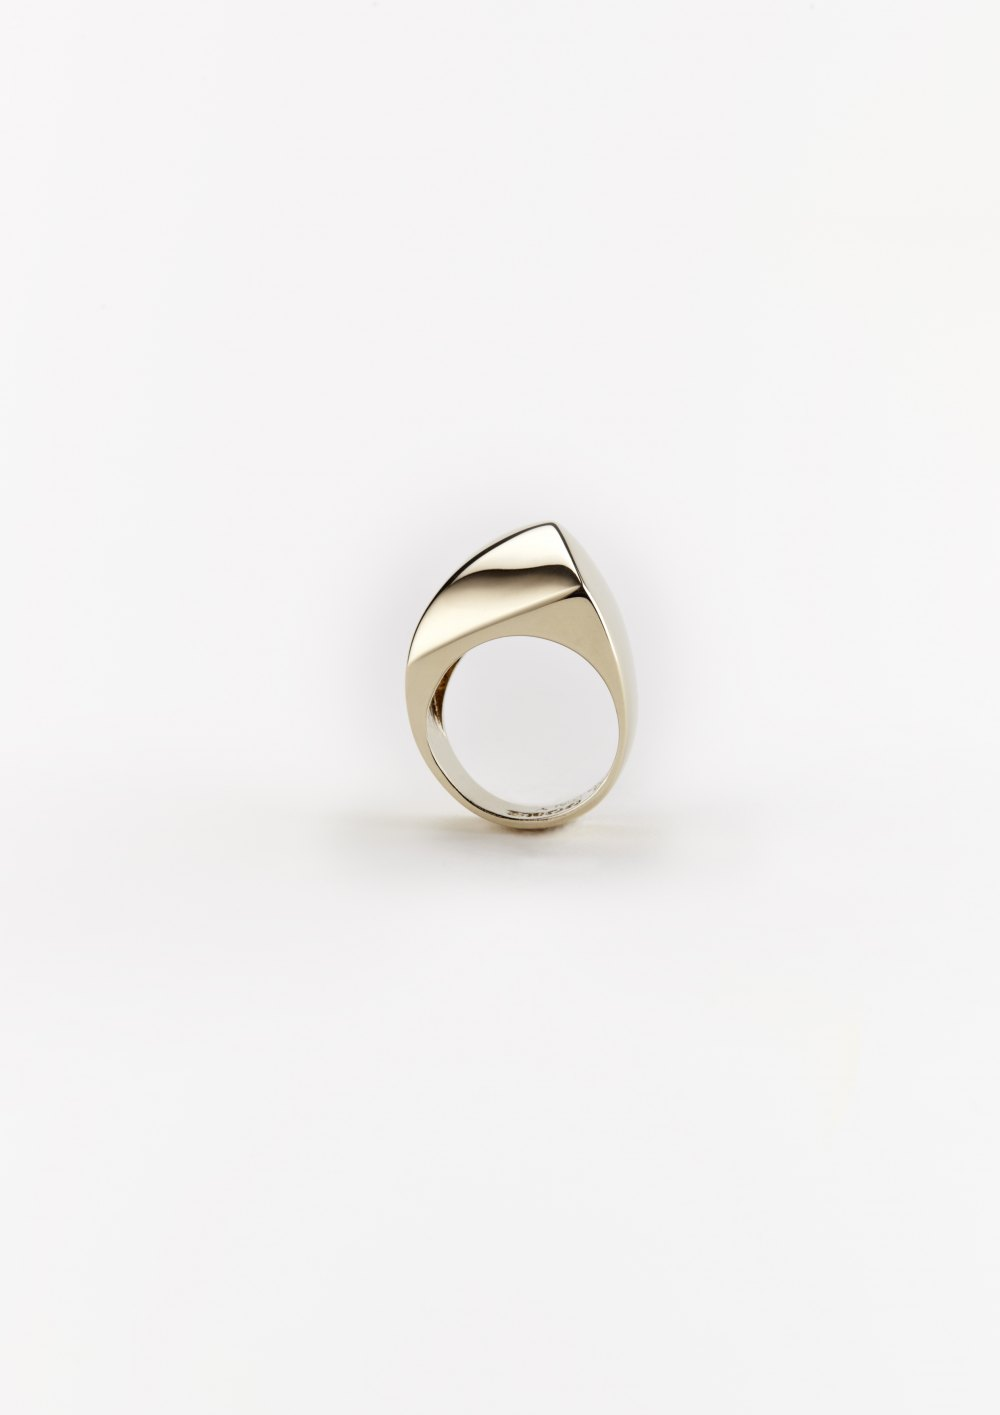 golden stone collection stone 27 sculptural diamond ring in gold silver hand polished  shine xeniabousjewellery